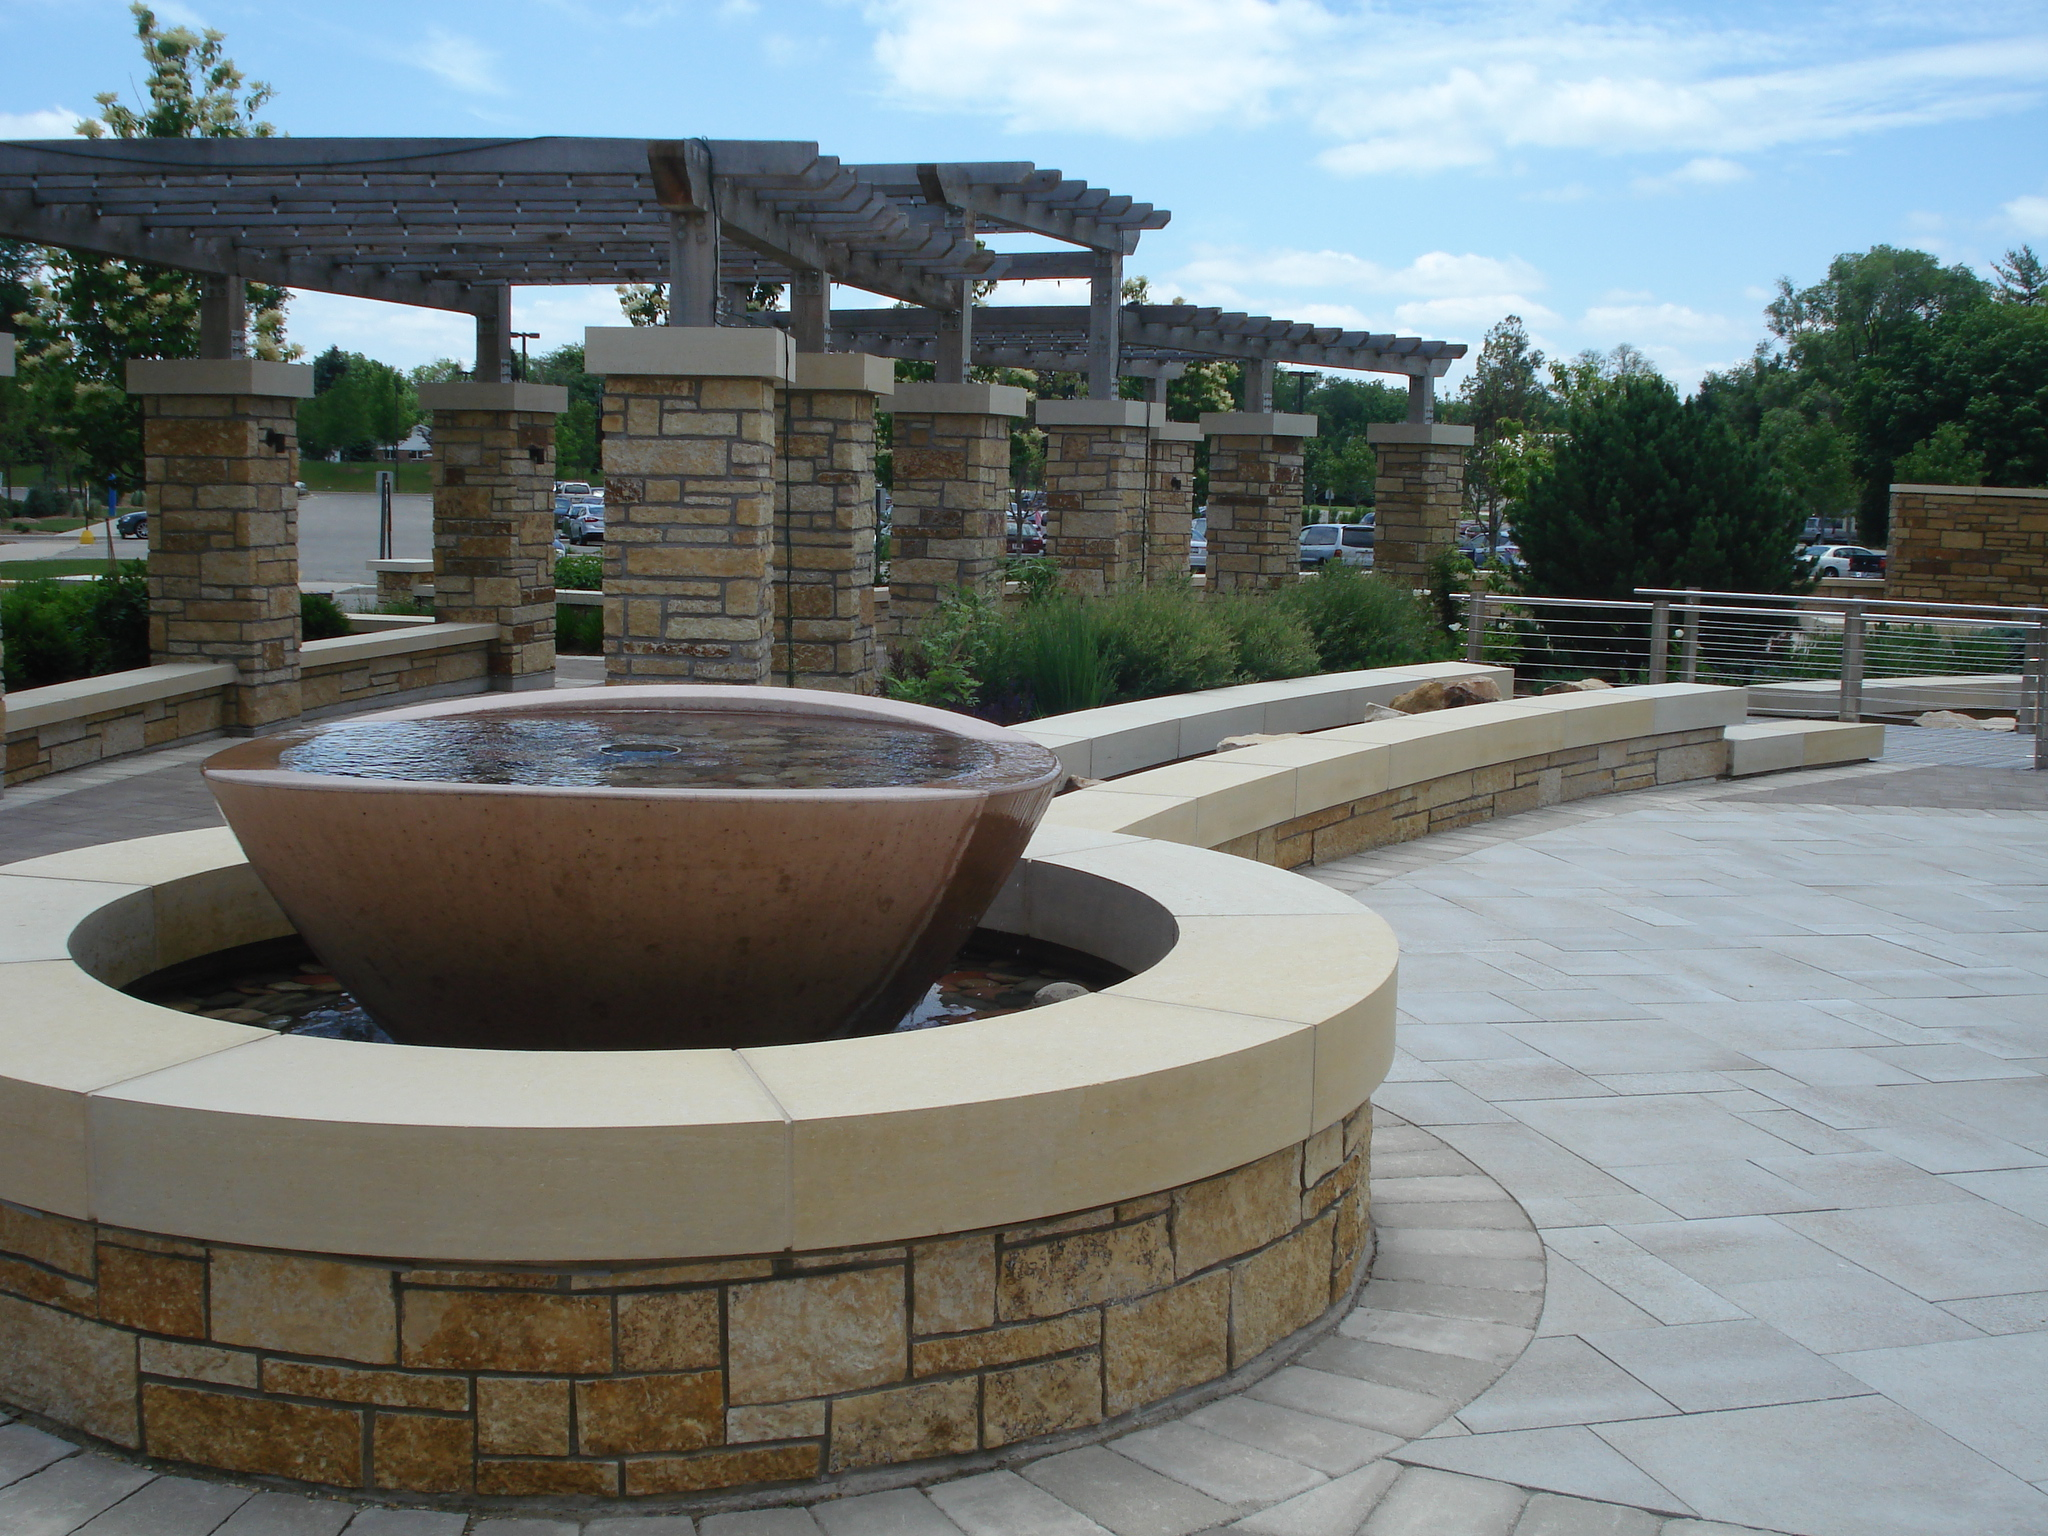 The enhanced entry experience to this important regional medical facility became a contemplative garden space and the design team took cues from the forms and materials of the building's architecture, translating those themes into water features, custom arbors and tactile pavements.